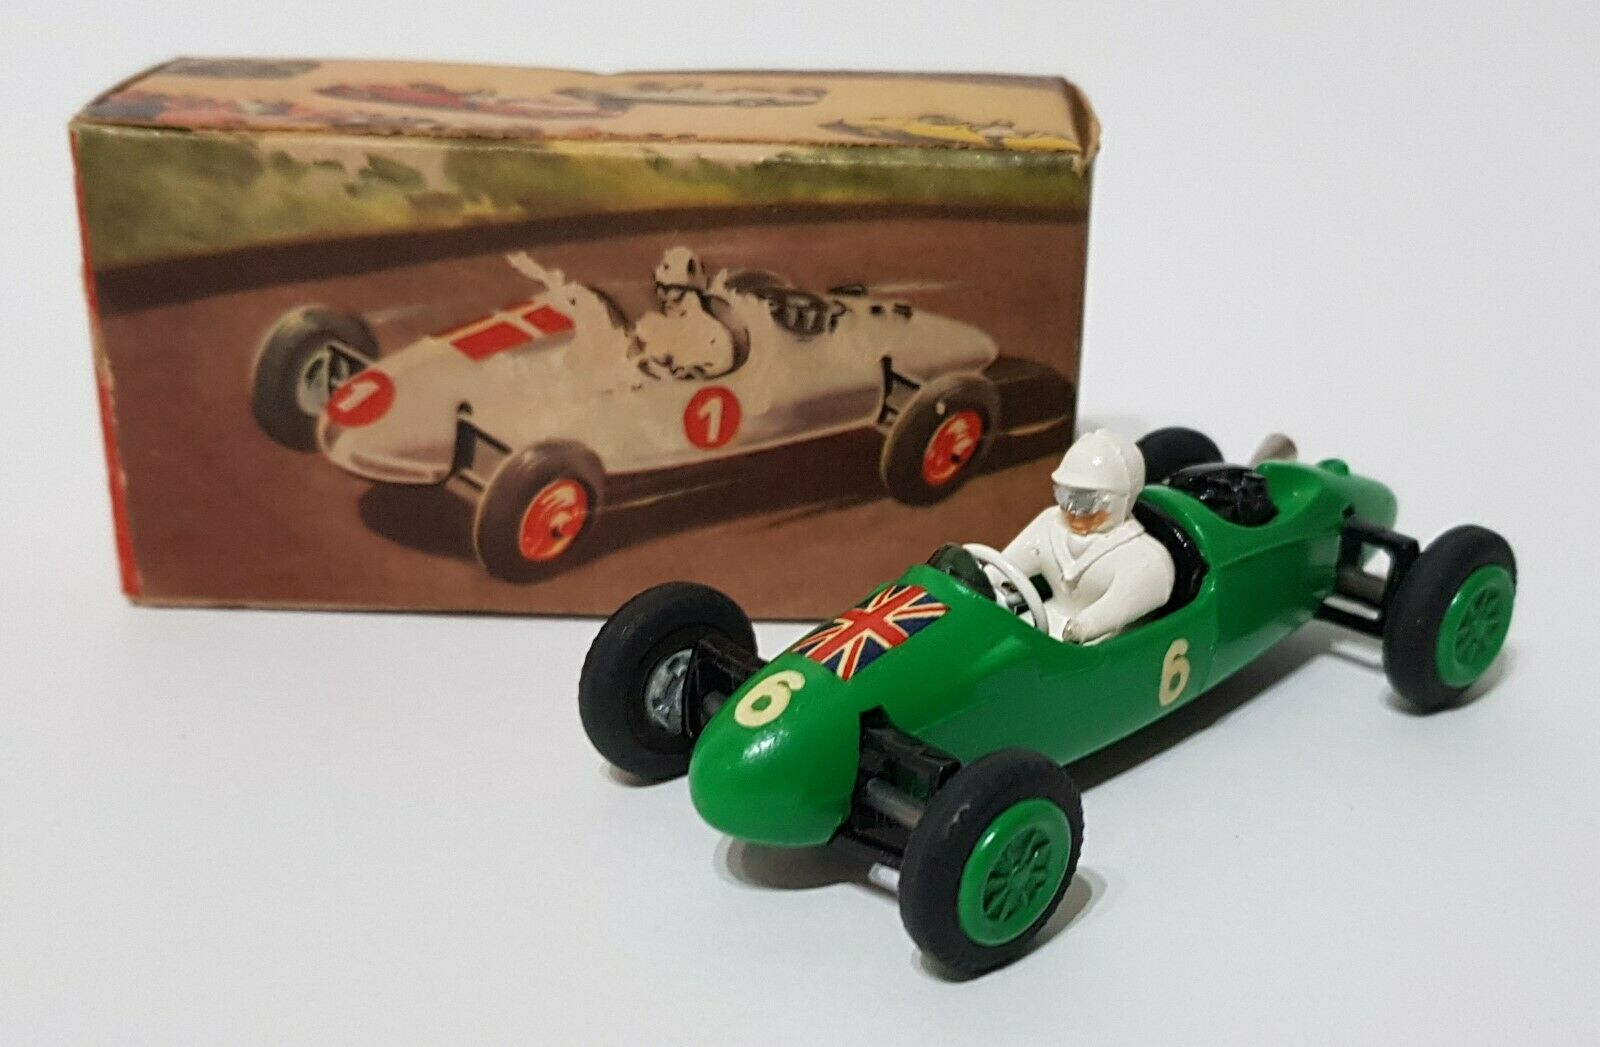 Tekno Toys No. 812, British Norton   Cooper Midget Car, - Superb Mint Condition.